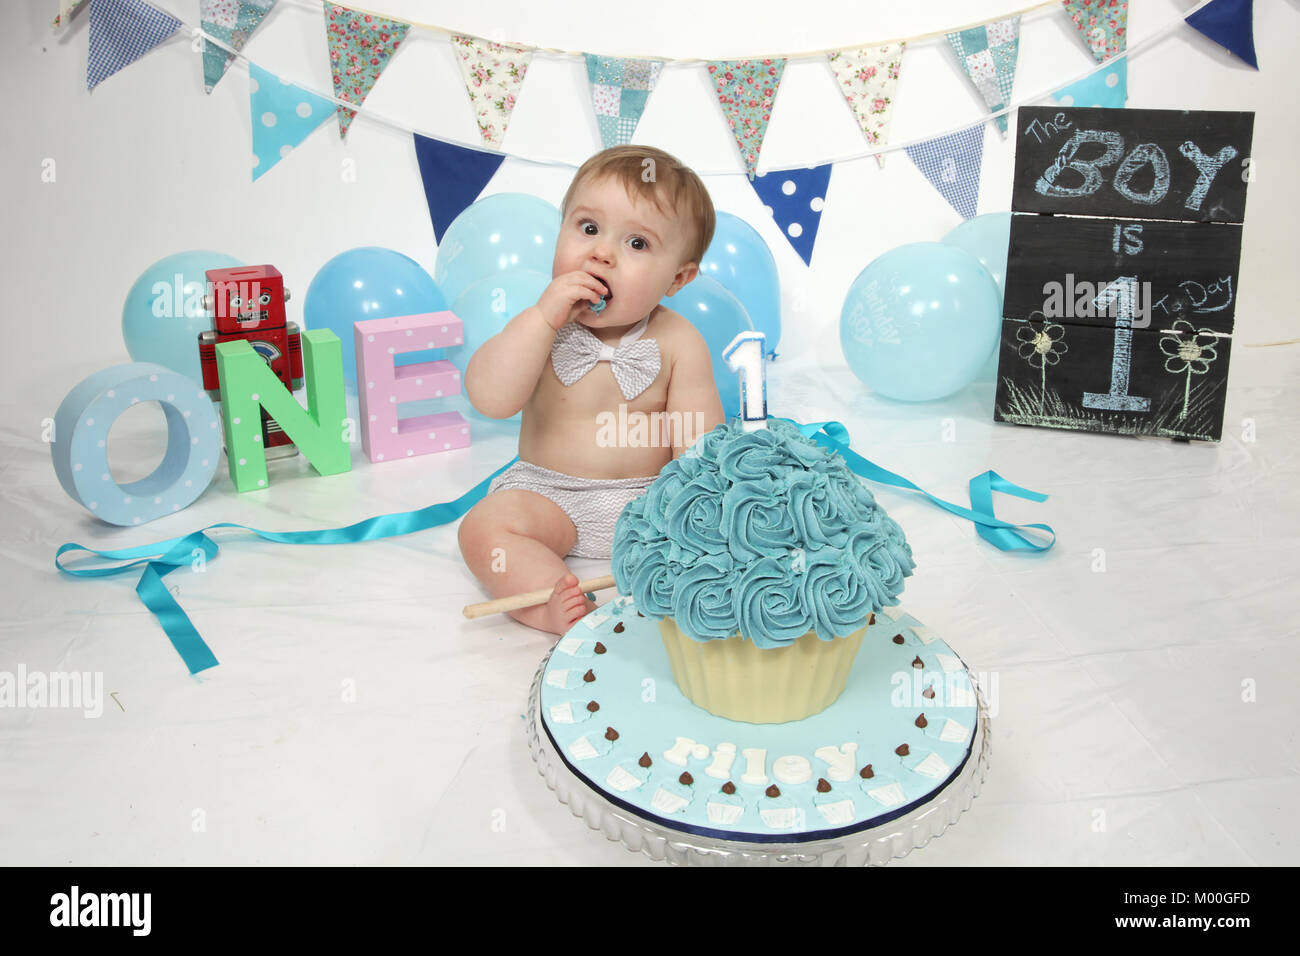 Terrific 1 Year Old Boy Birthday Party Cake Smash Fun Food Stock Photo Personalised Birthday Cards Veneteletsinfo